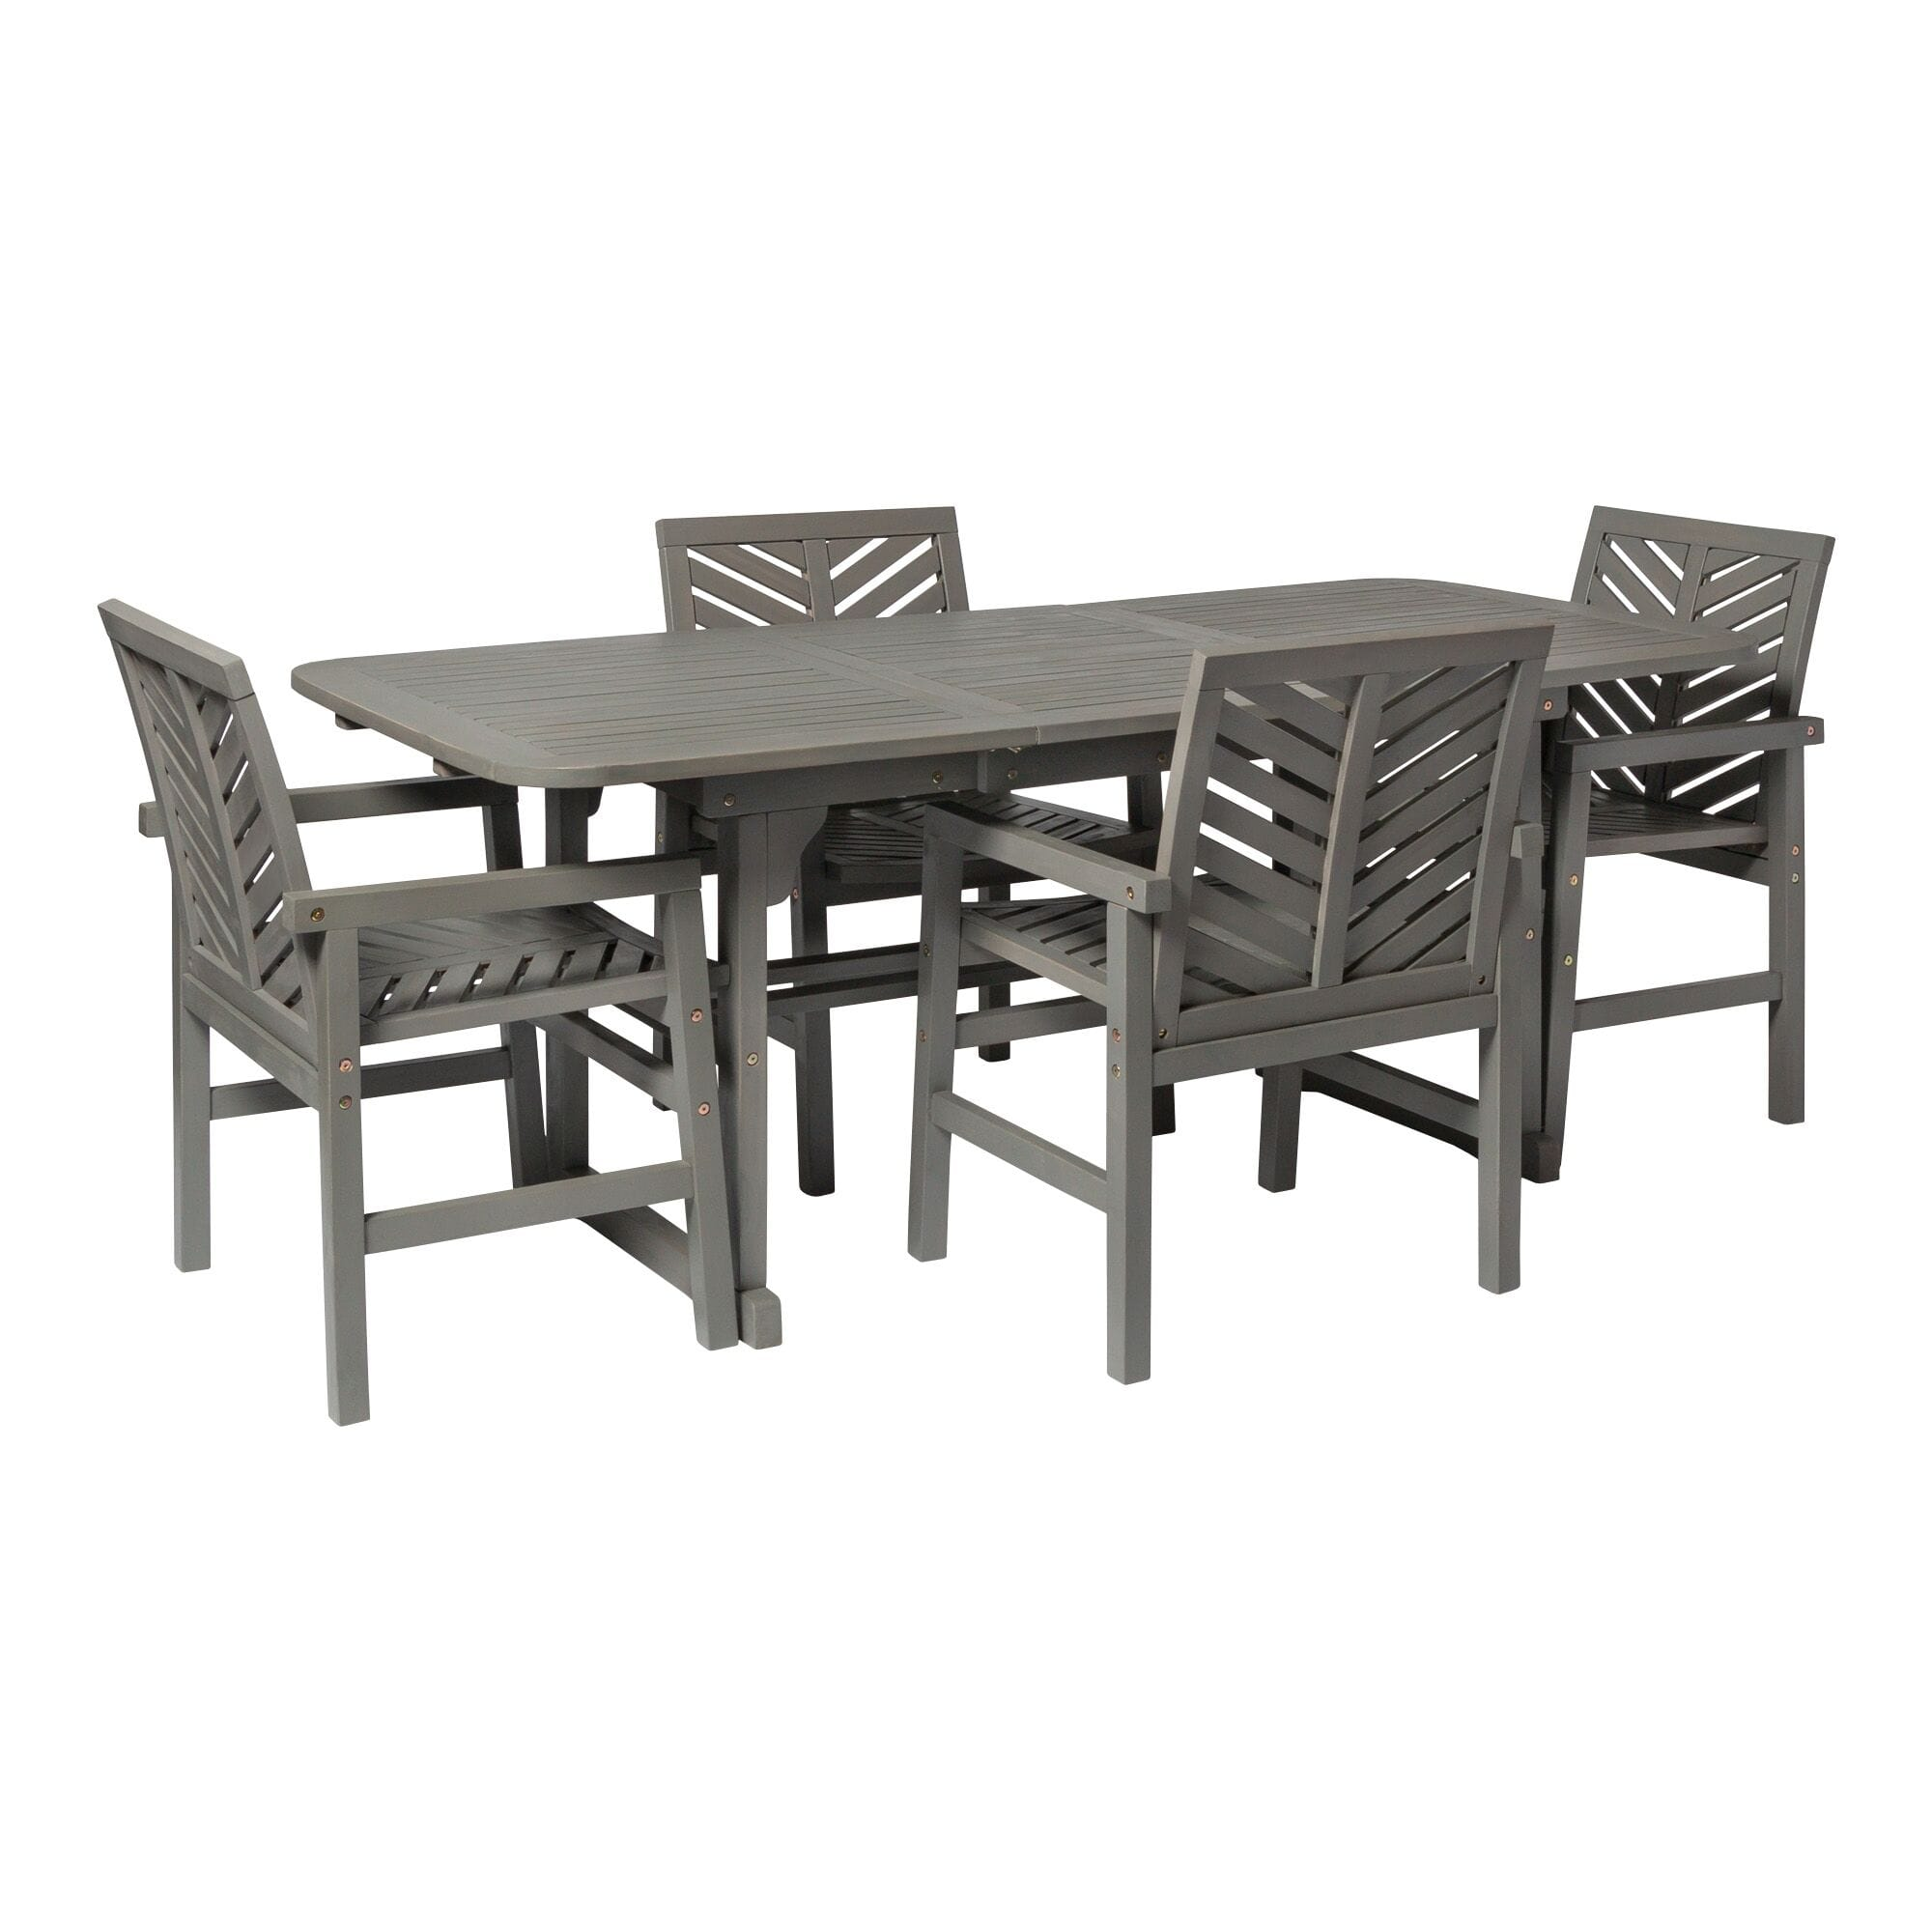 5 Piece Extendable Outdoor Patio Dining Set Grey Wash By Walker Edison